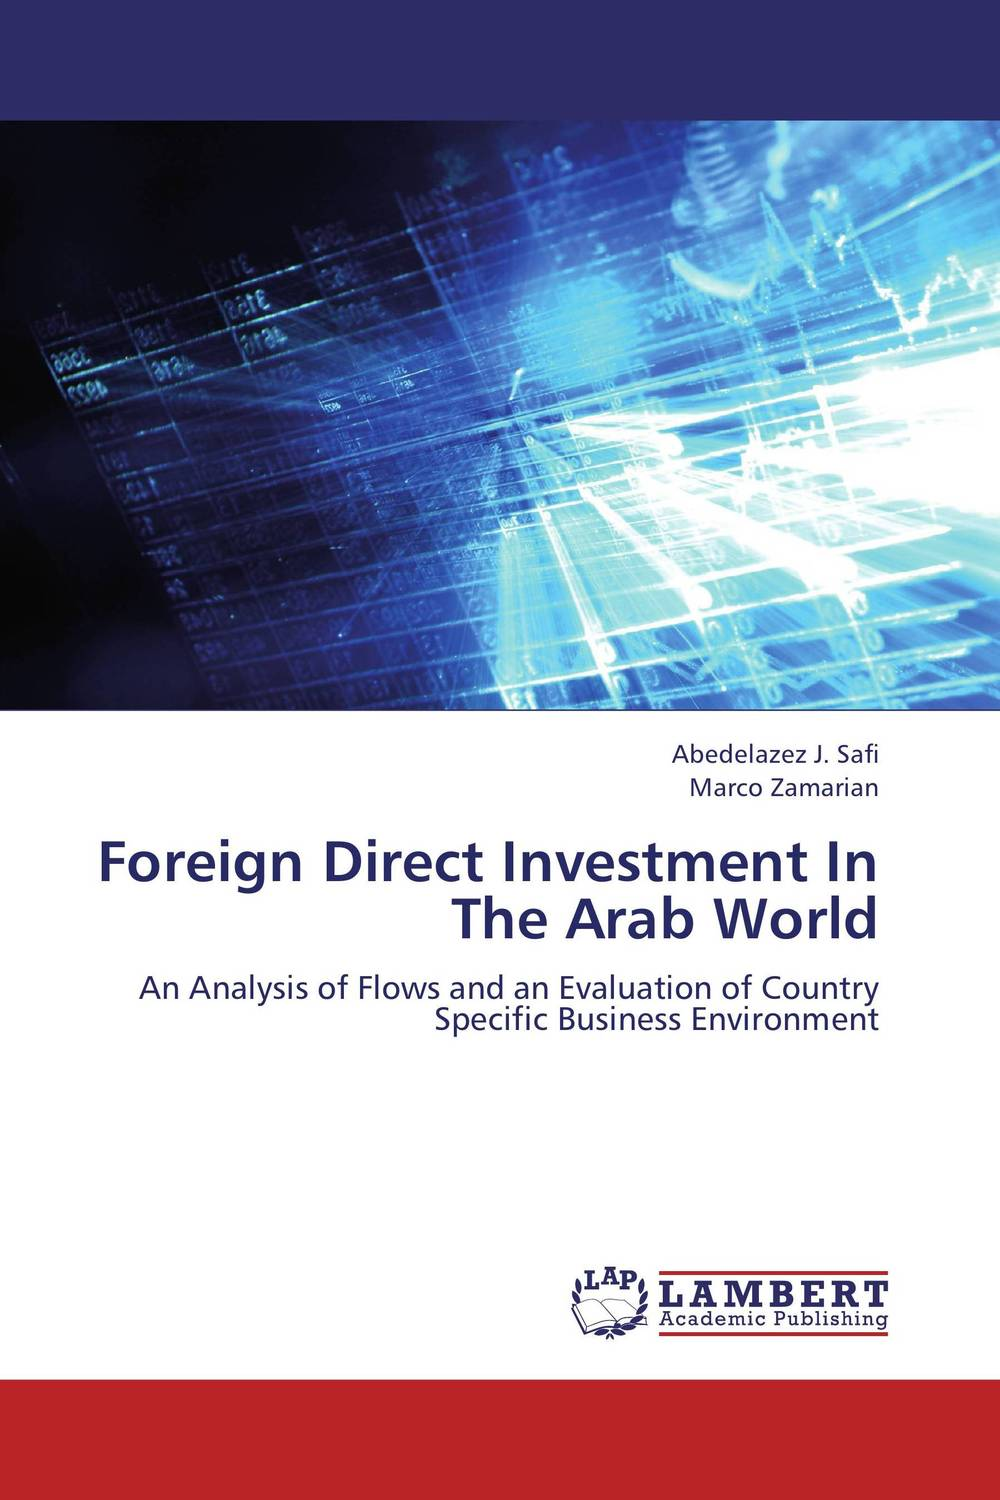 Foreign Direct Investment In The Arab World